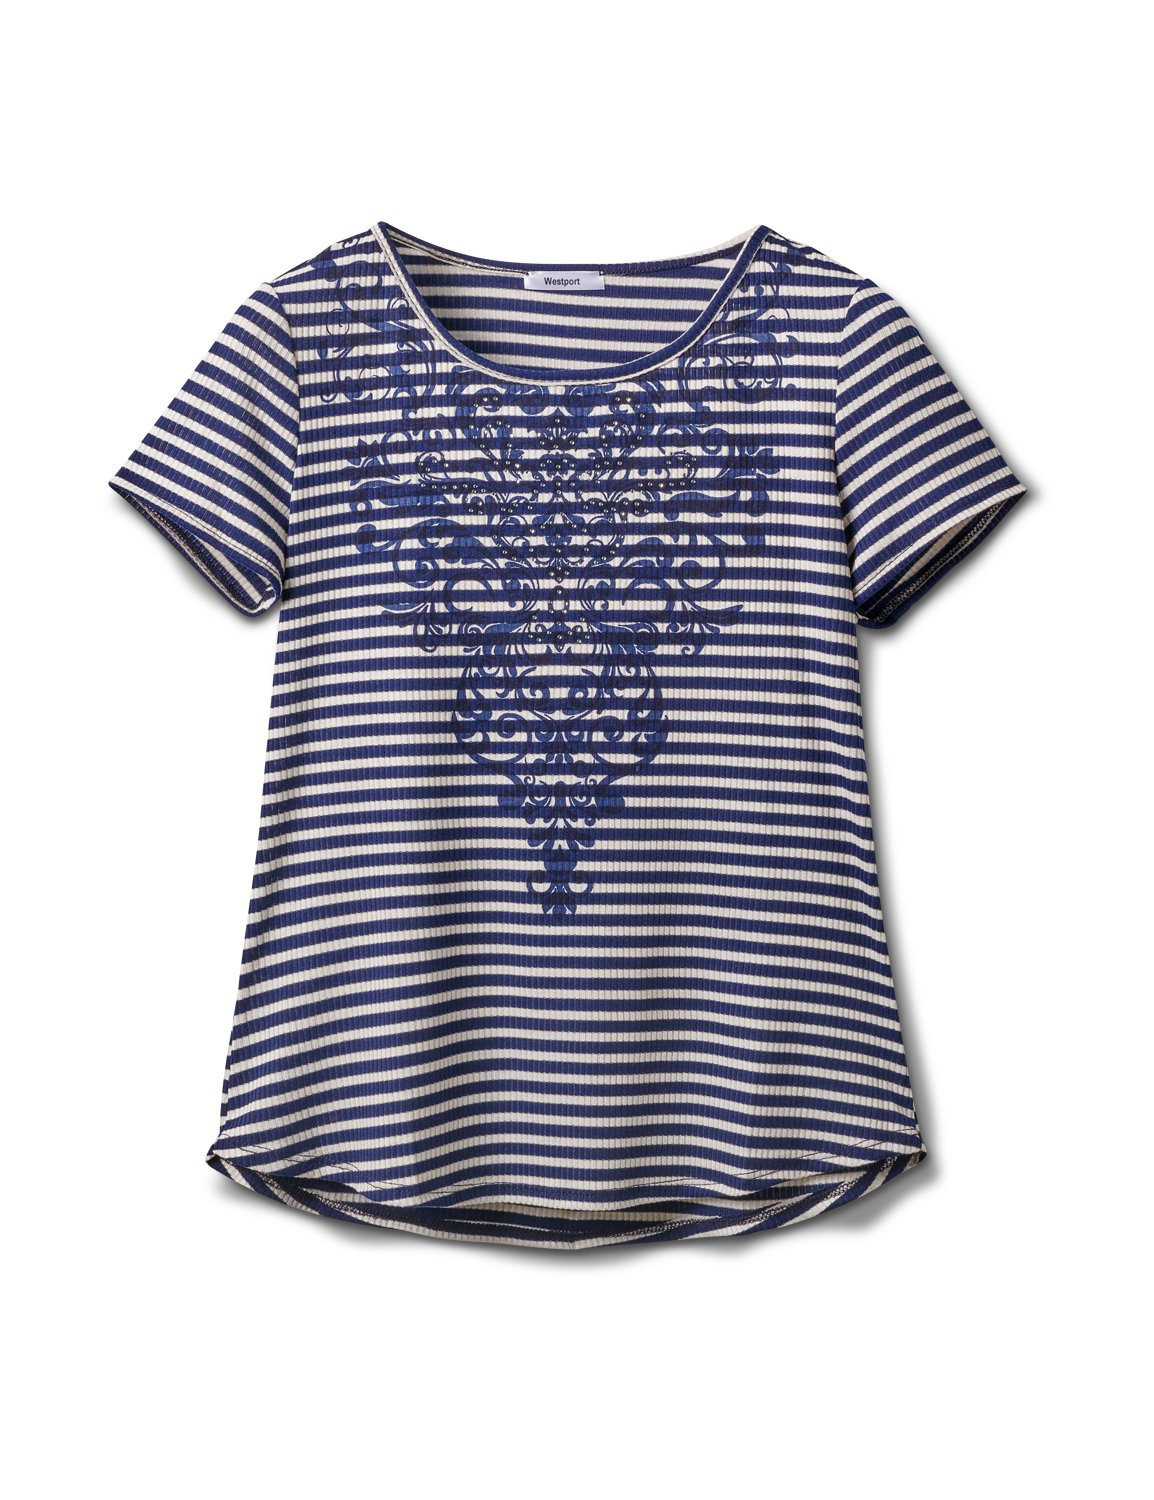 Screen Print Stripe Rib Tee - Misses -Navy - Front